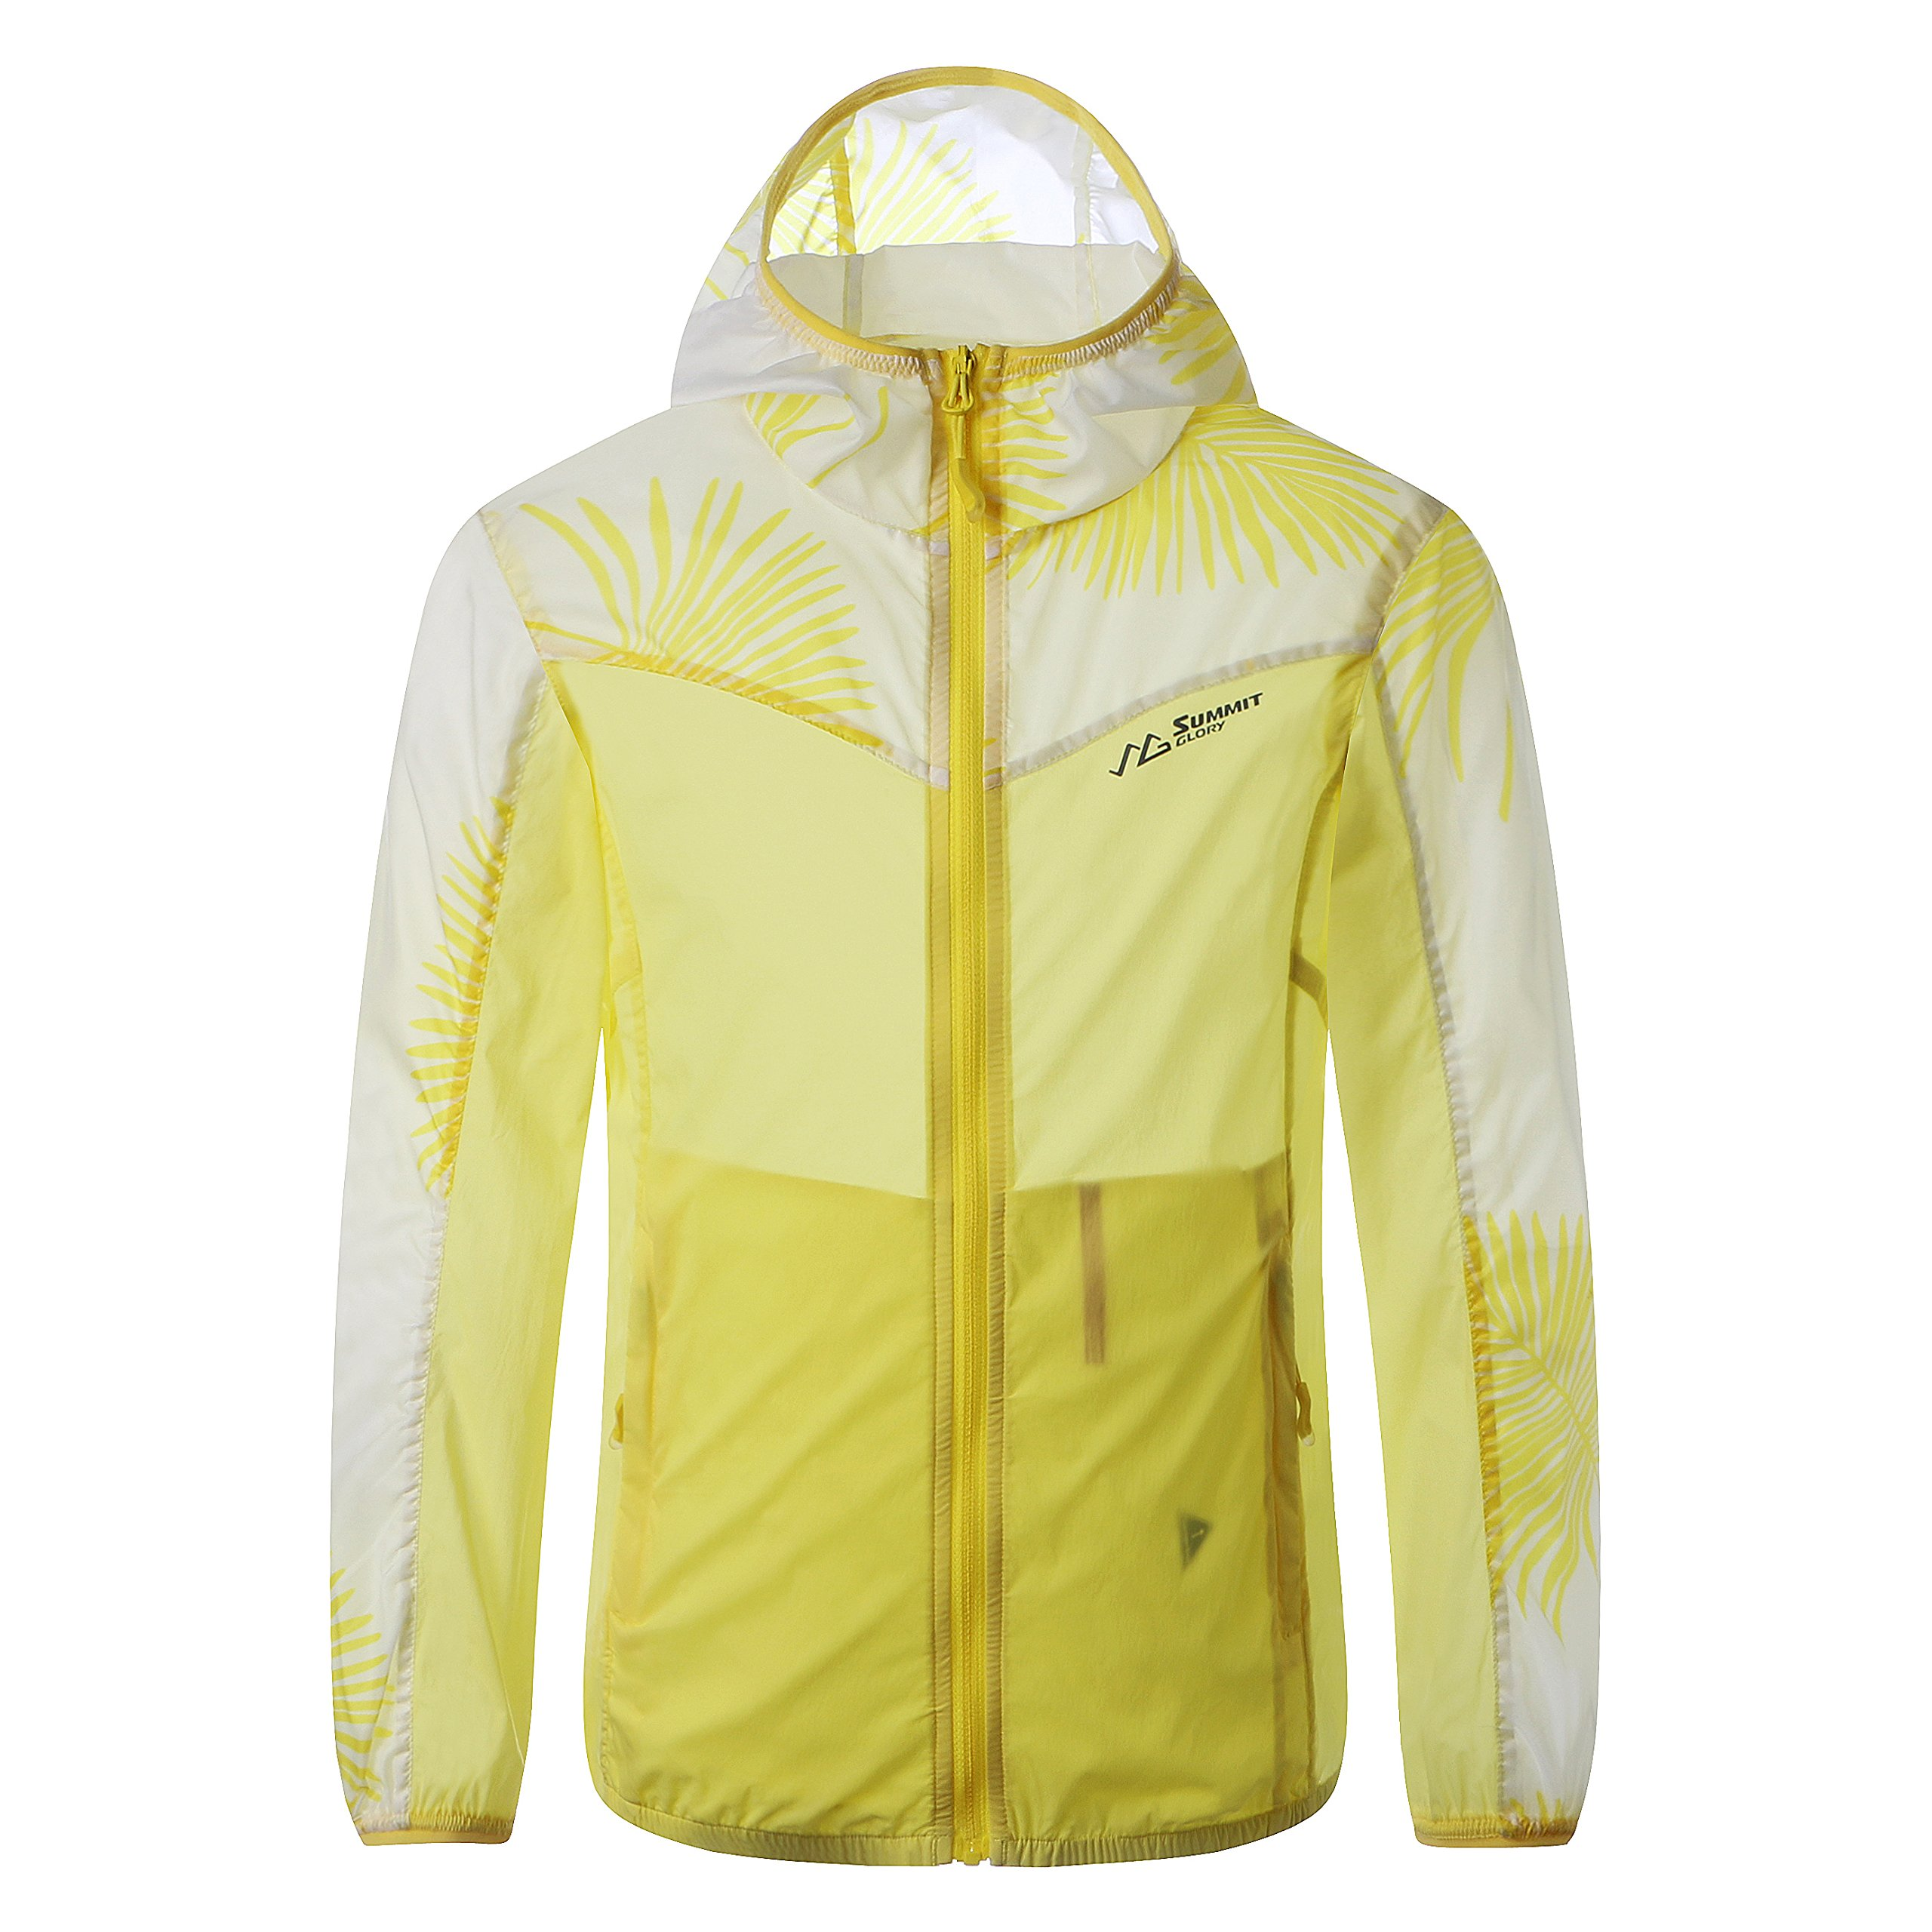 Summit Glory Kid's Ultra Lightweight Quick Dry Outdoor Jacket Skin Coat by Summit Glory (Image #1)